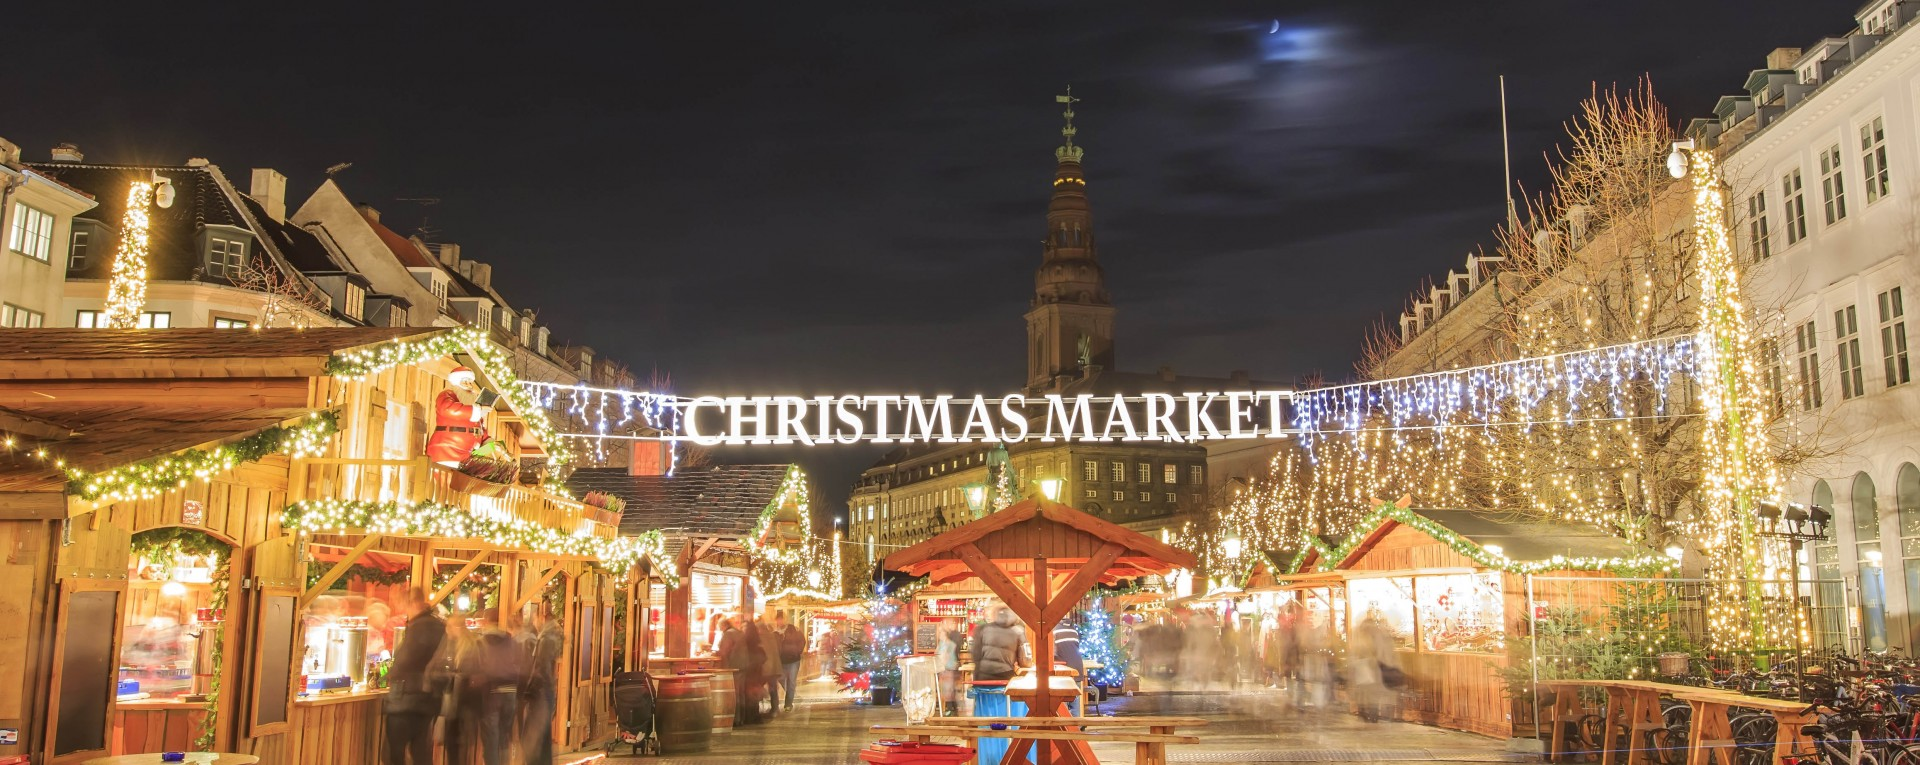 Chritmas Market Tours